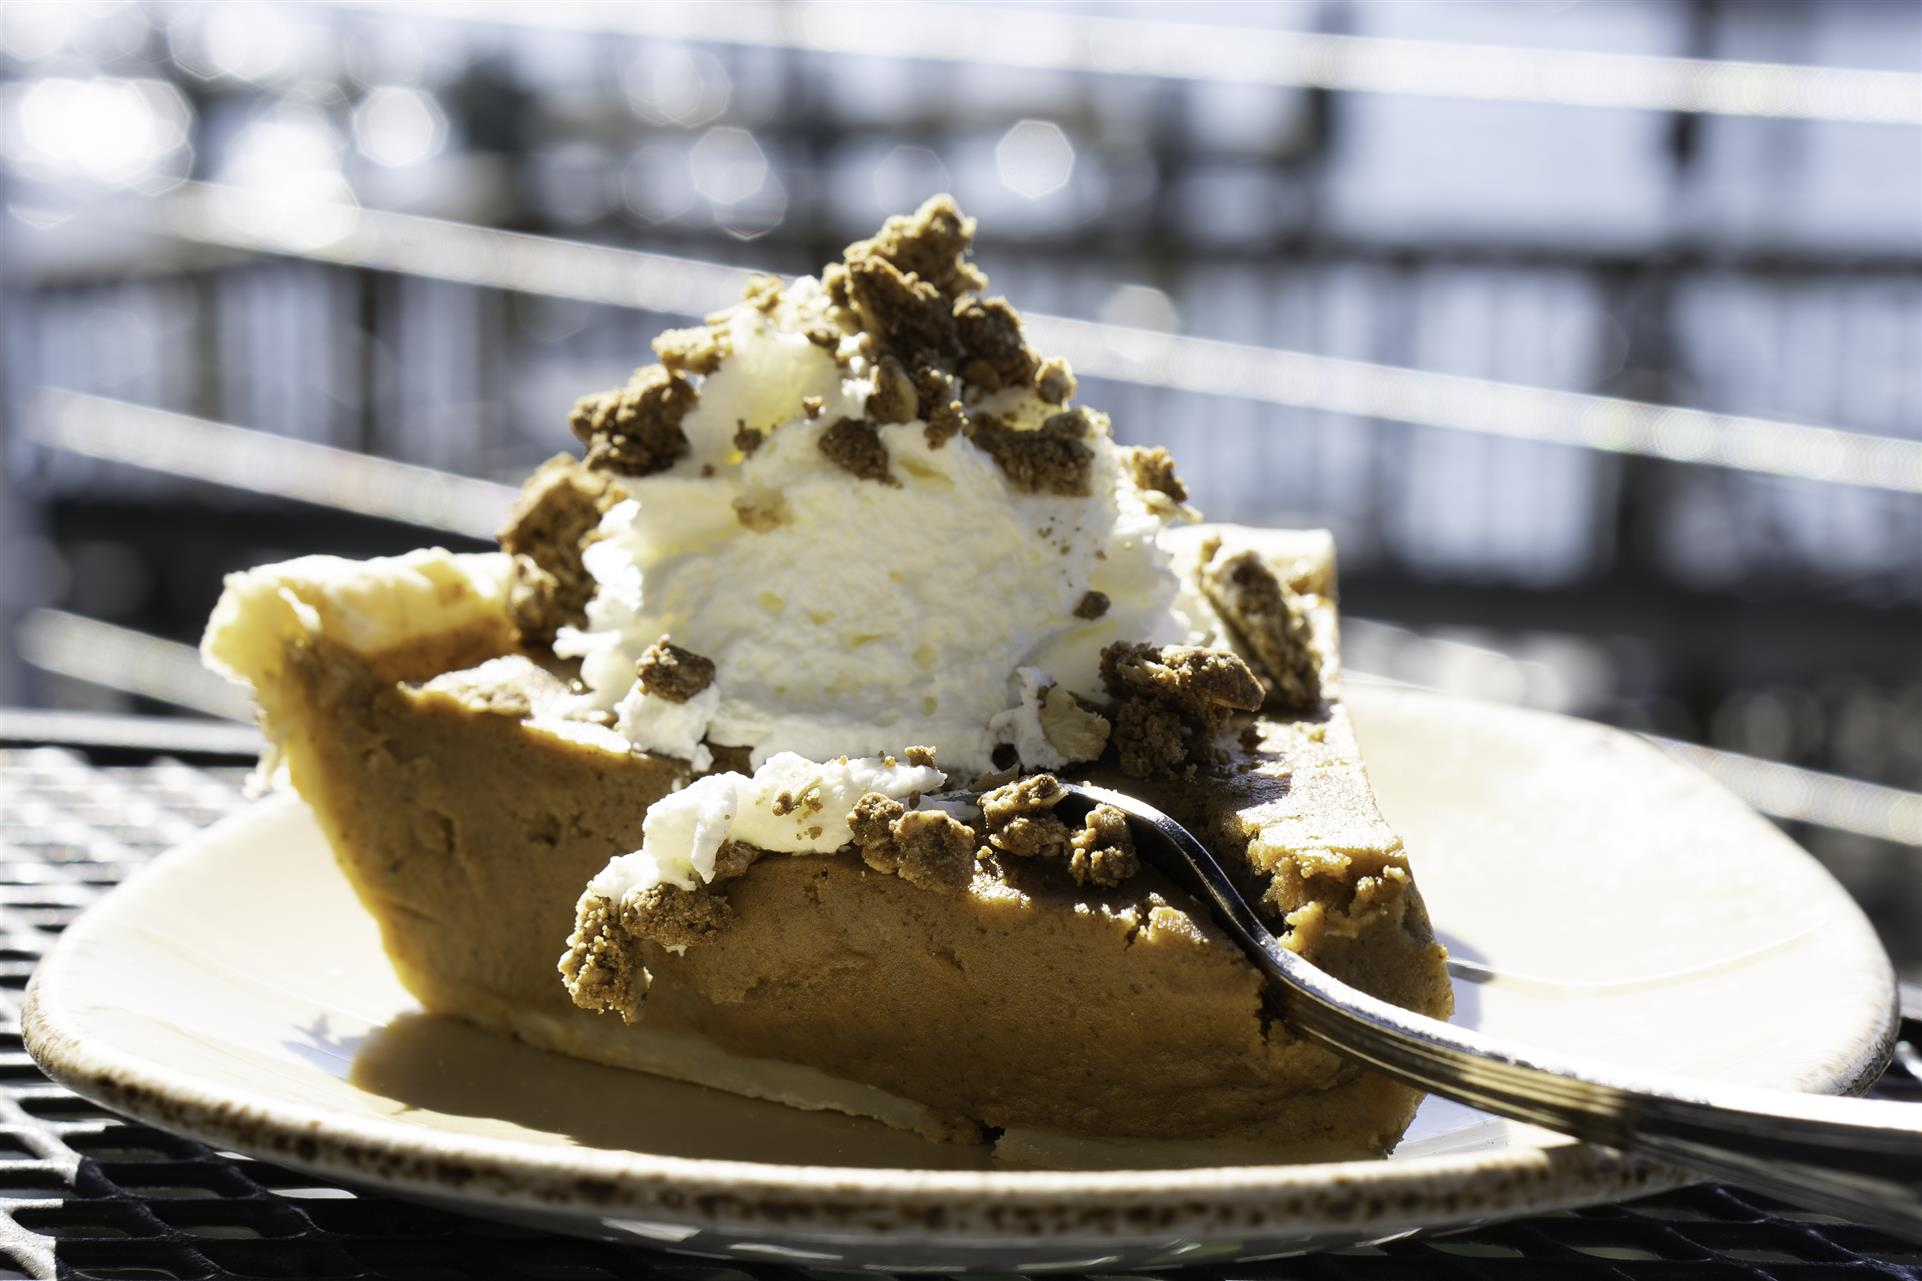 piece of pie with ice cream and chocolate on top